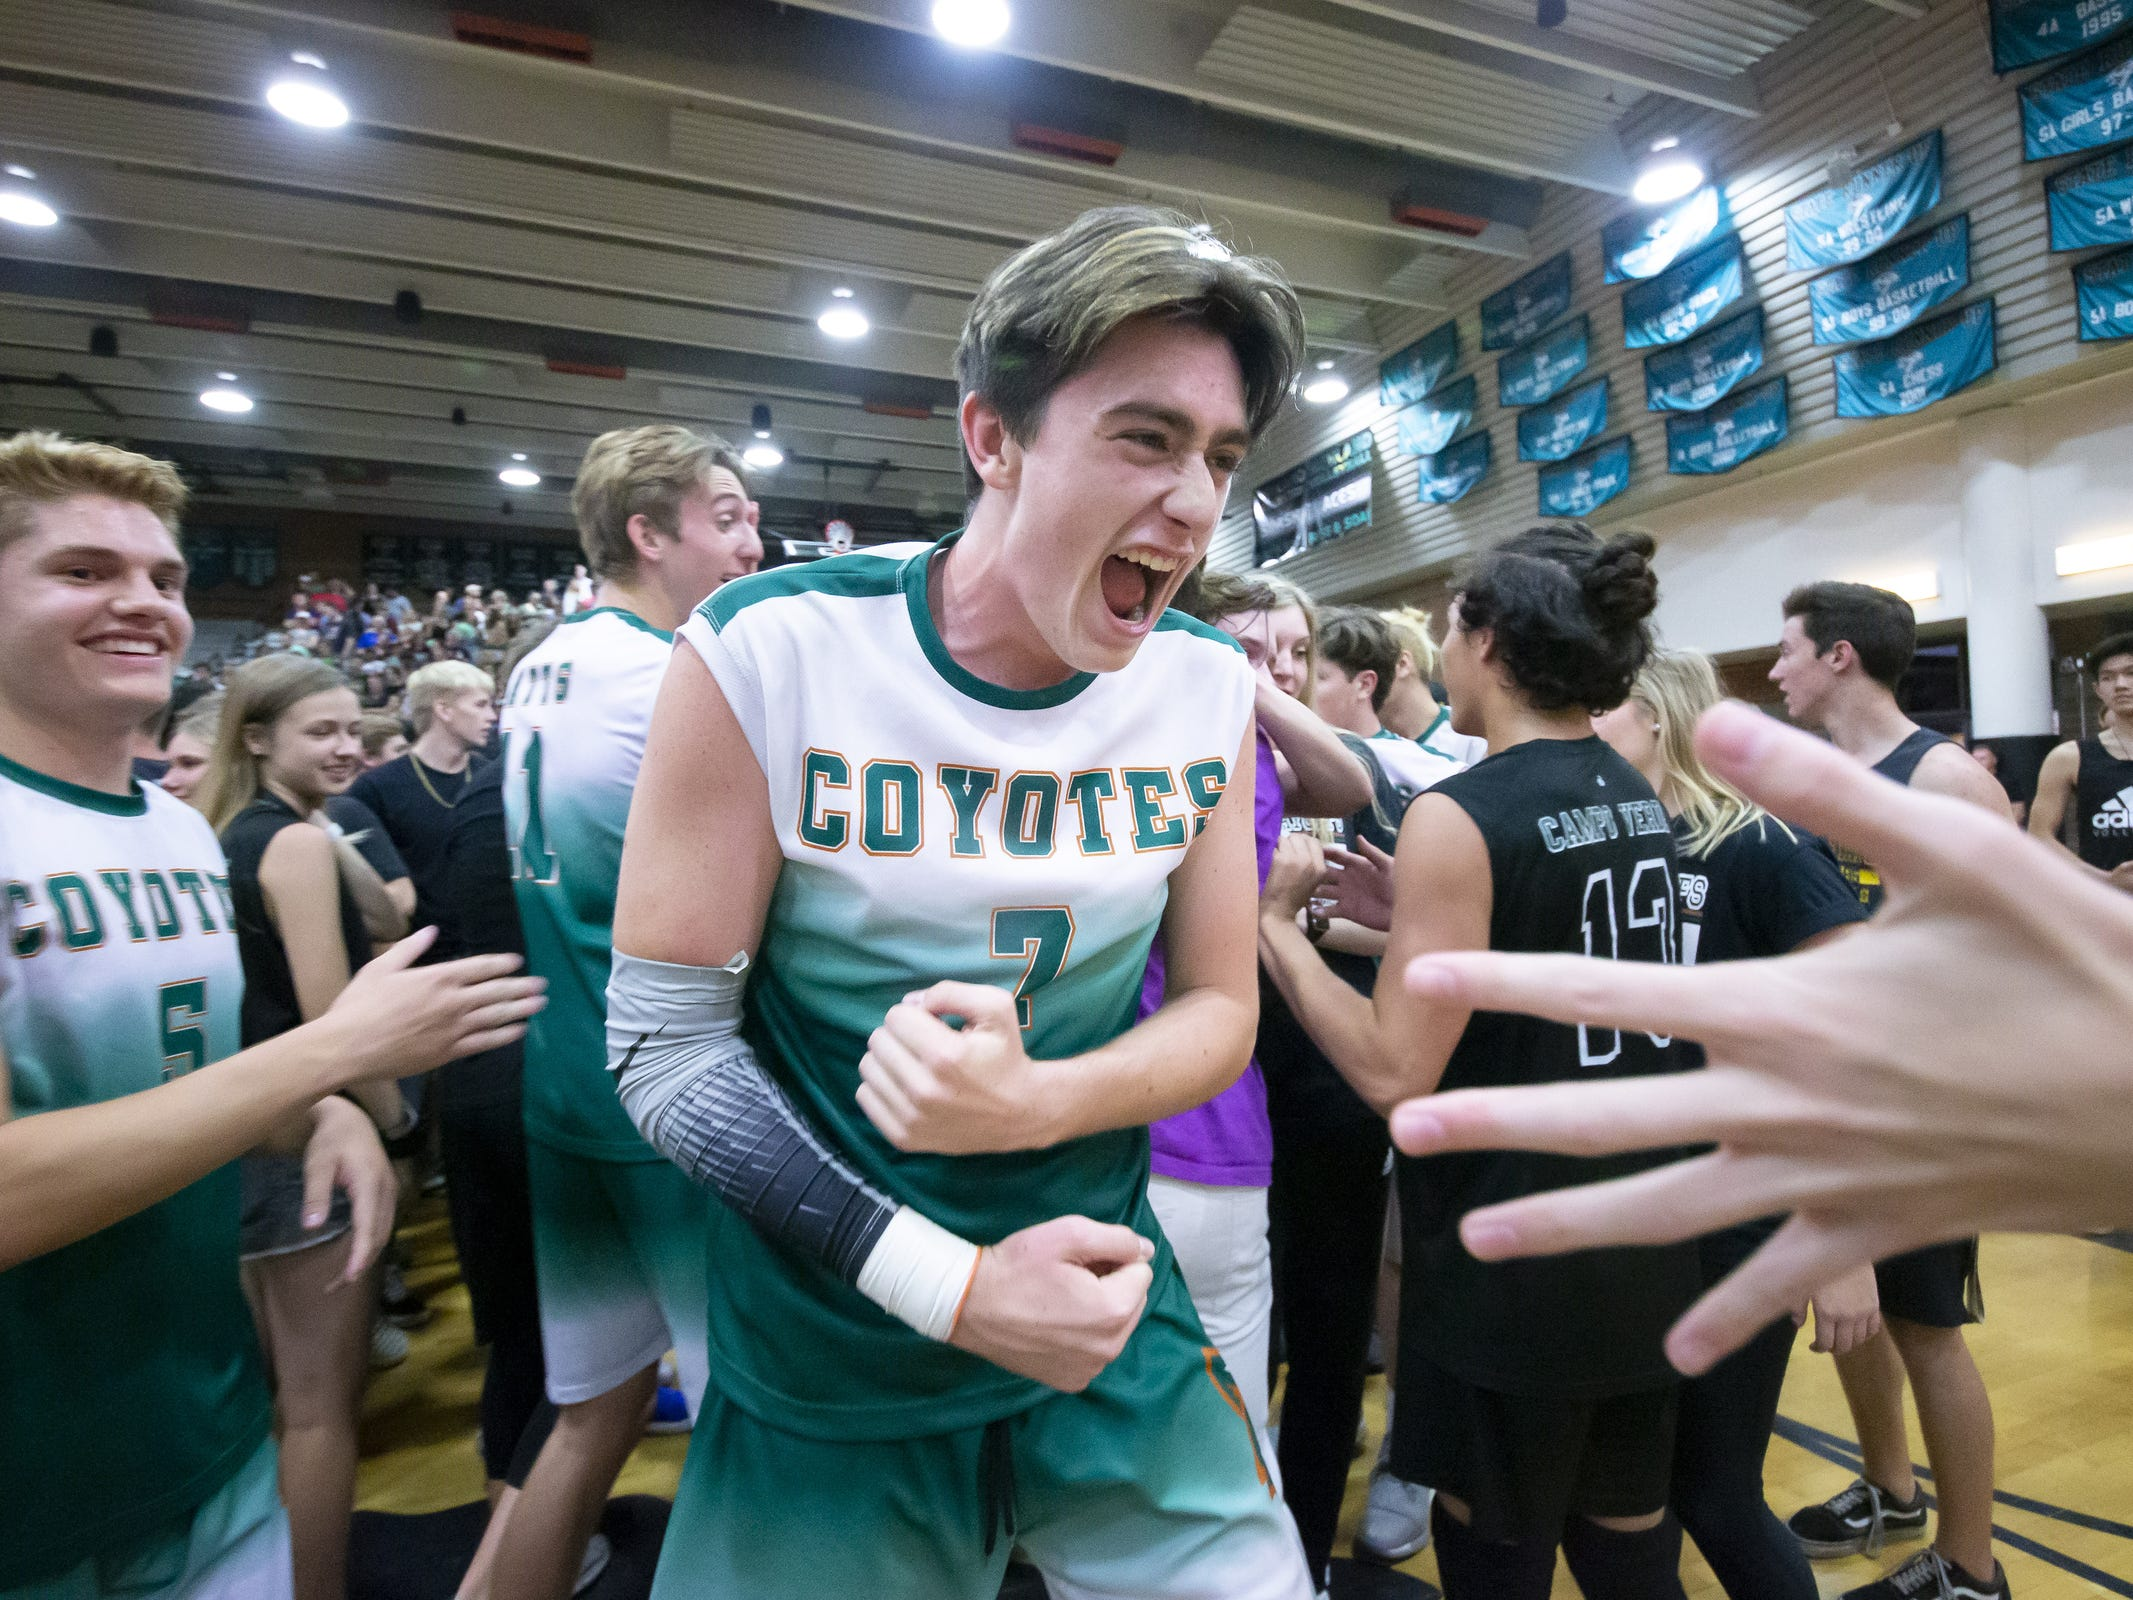 Senior middle blocker Kade Irvine (7) of the Campo Verde Coyotes celebrates Campo Verde's 3-0 win against the Tucson Mountain View Mountain Lions in the 5A Boys Volleyball State Championships at Higley High School on Saturday, May 11, 2019 in Gilbert, Arizona.